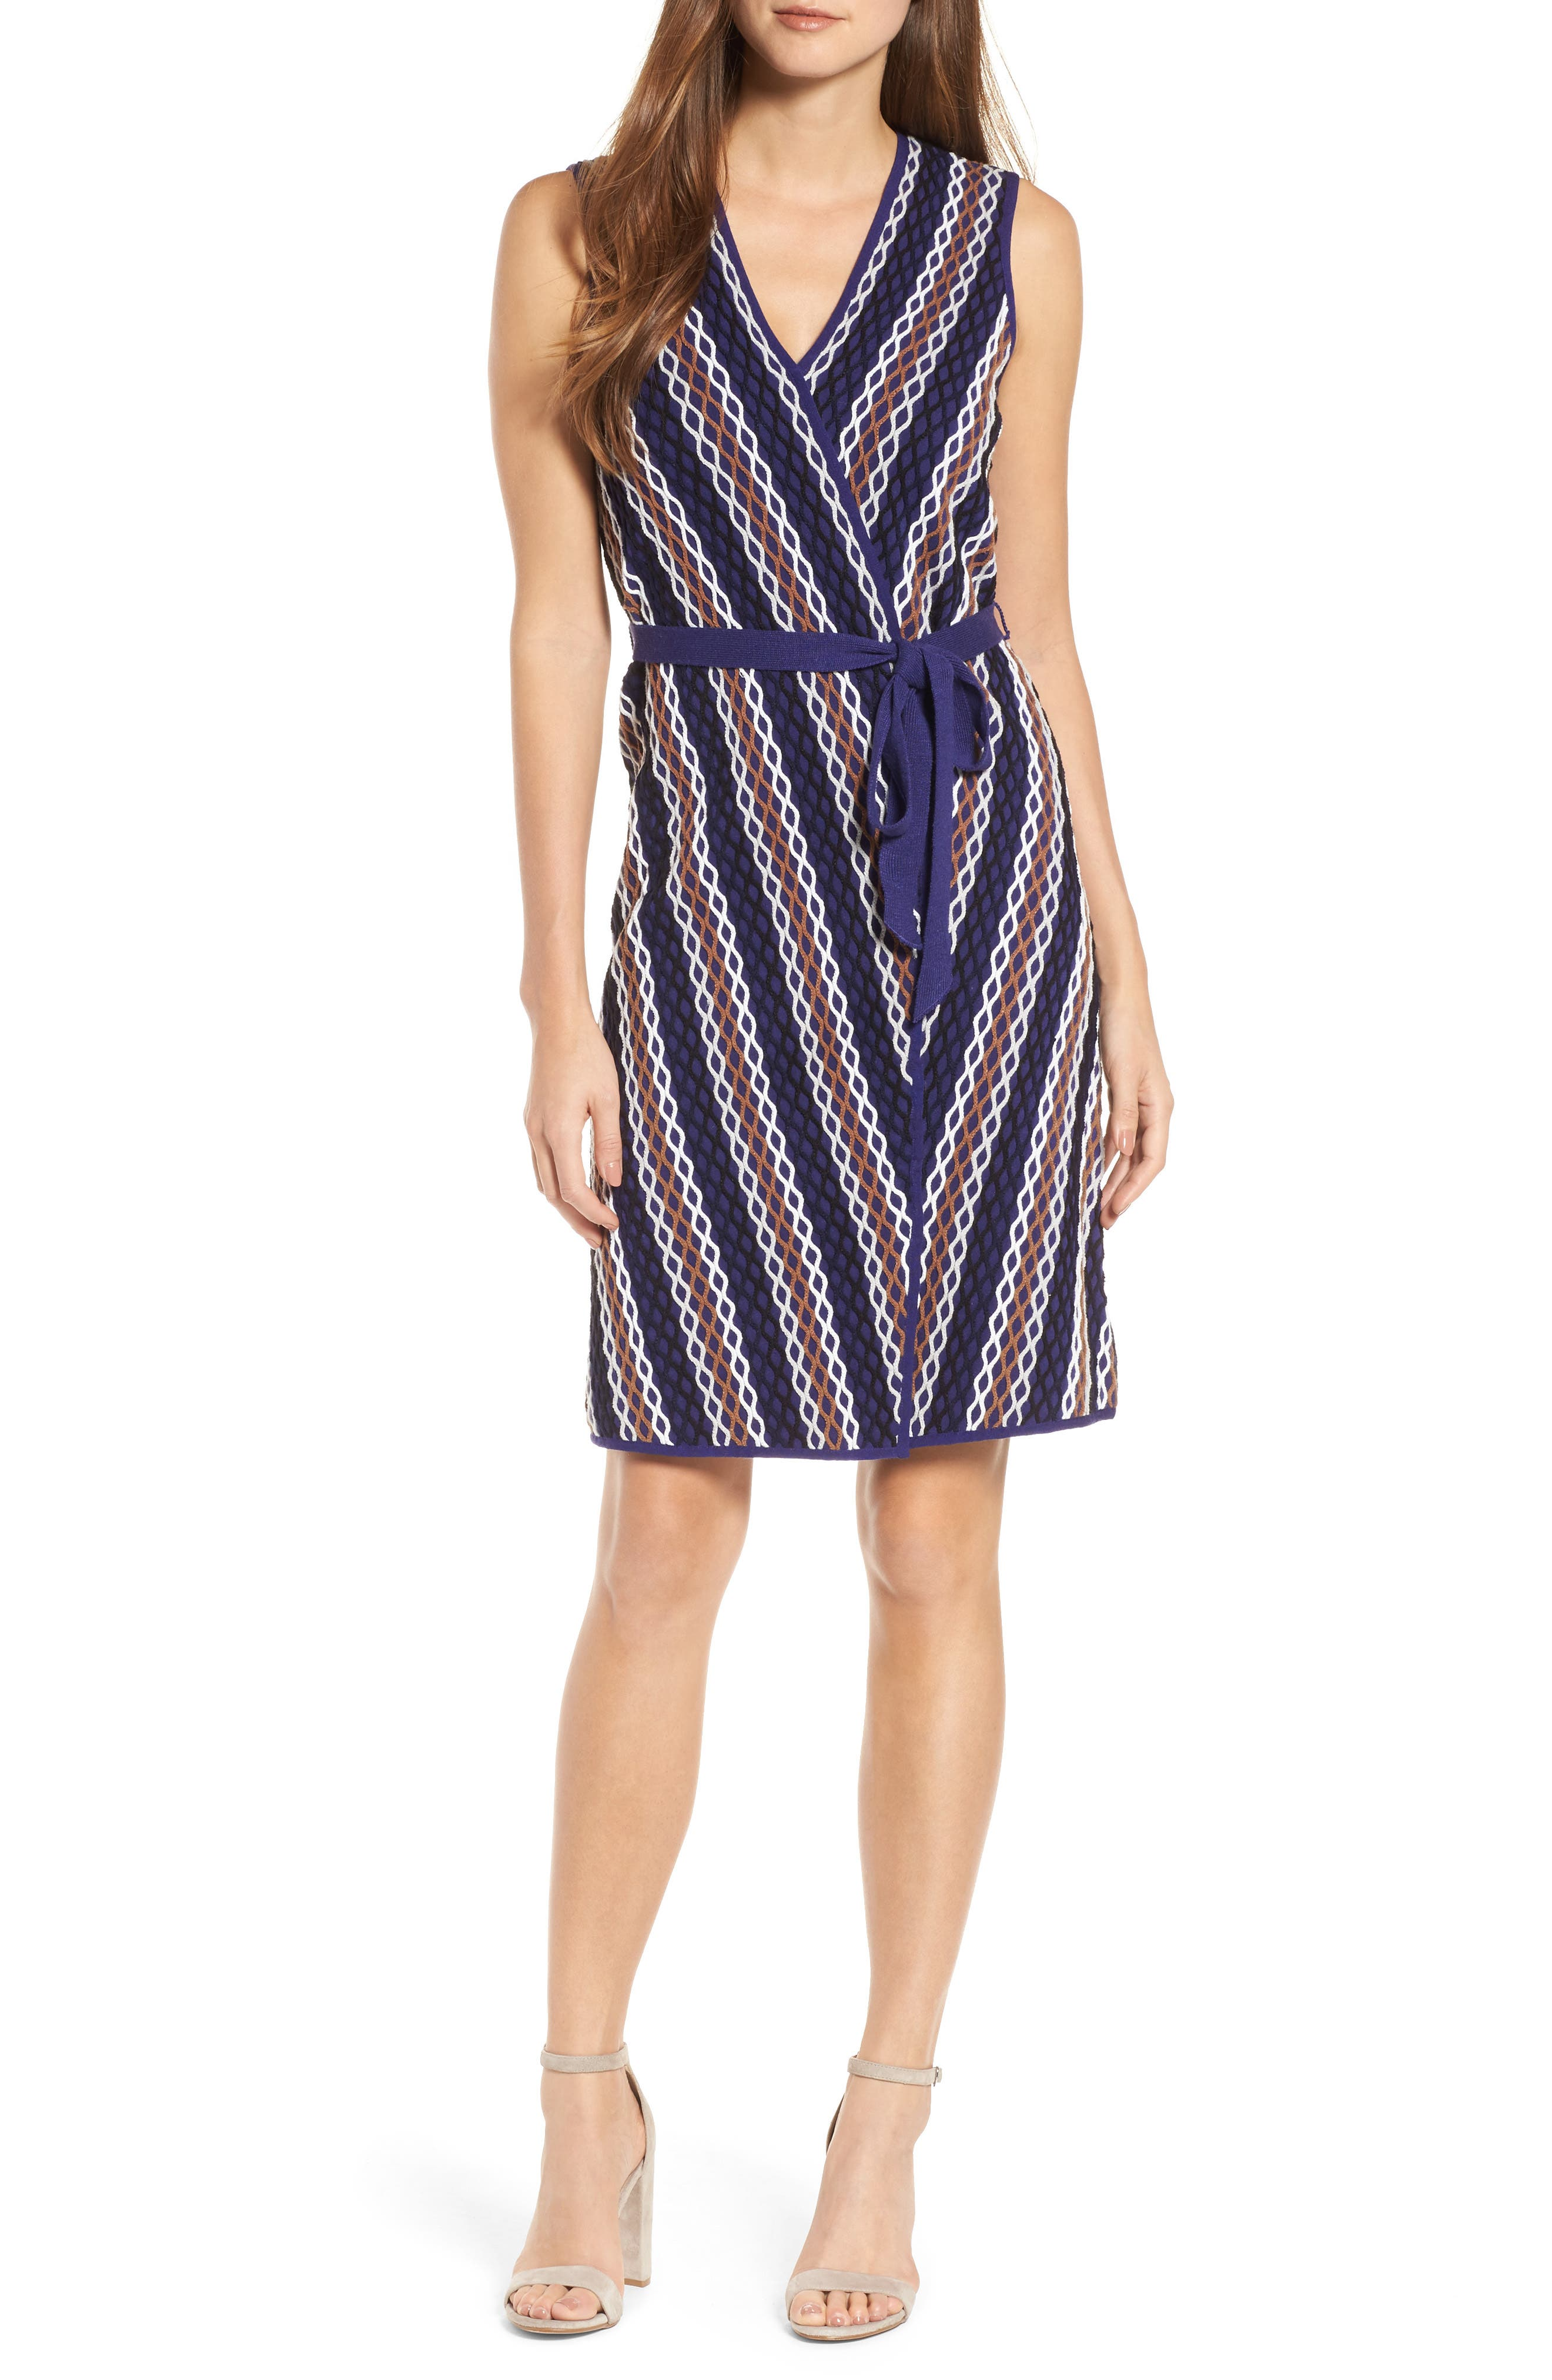 Main Image - NIC+ZOE Squiggled Up Faux Wrap Dress